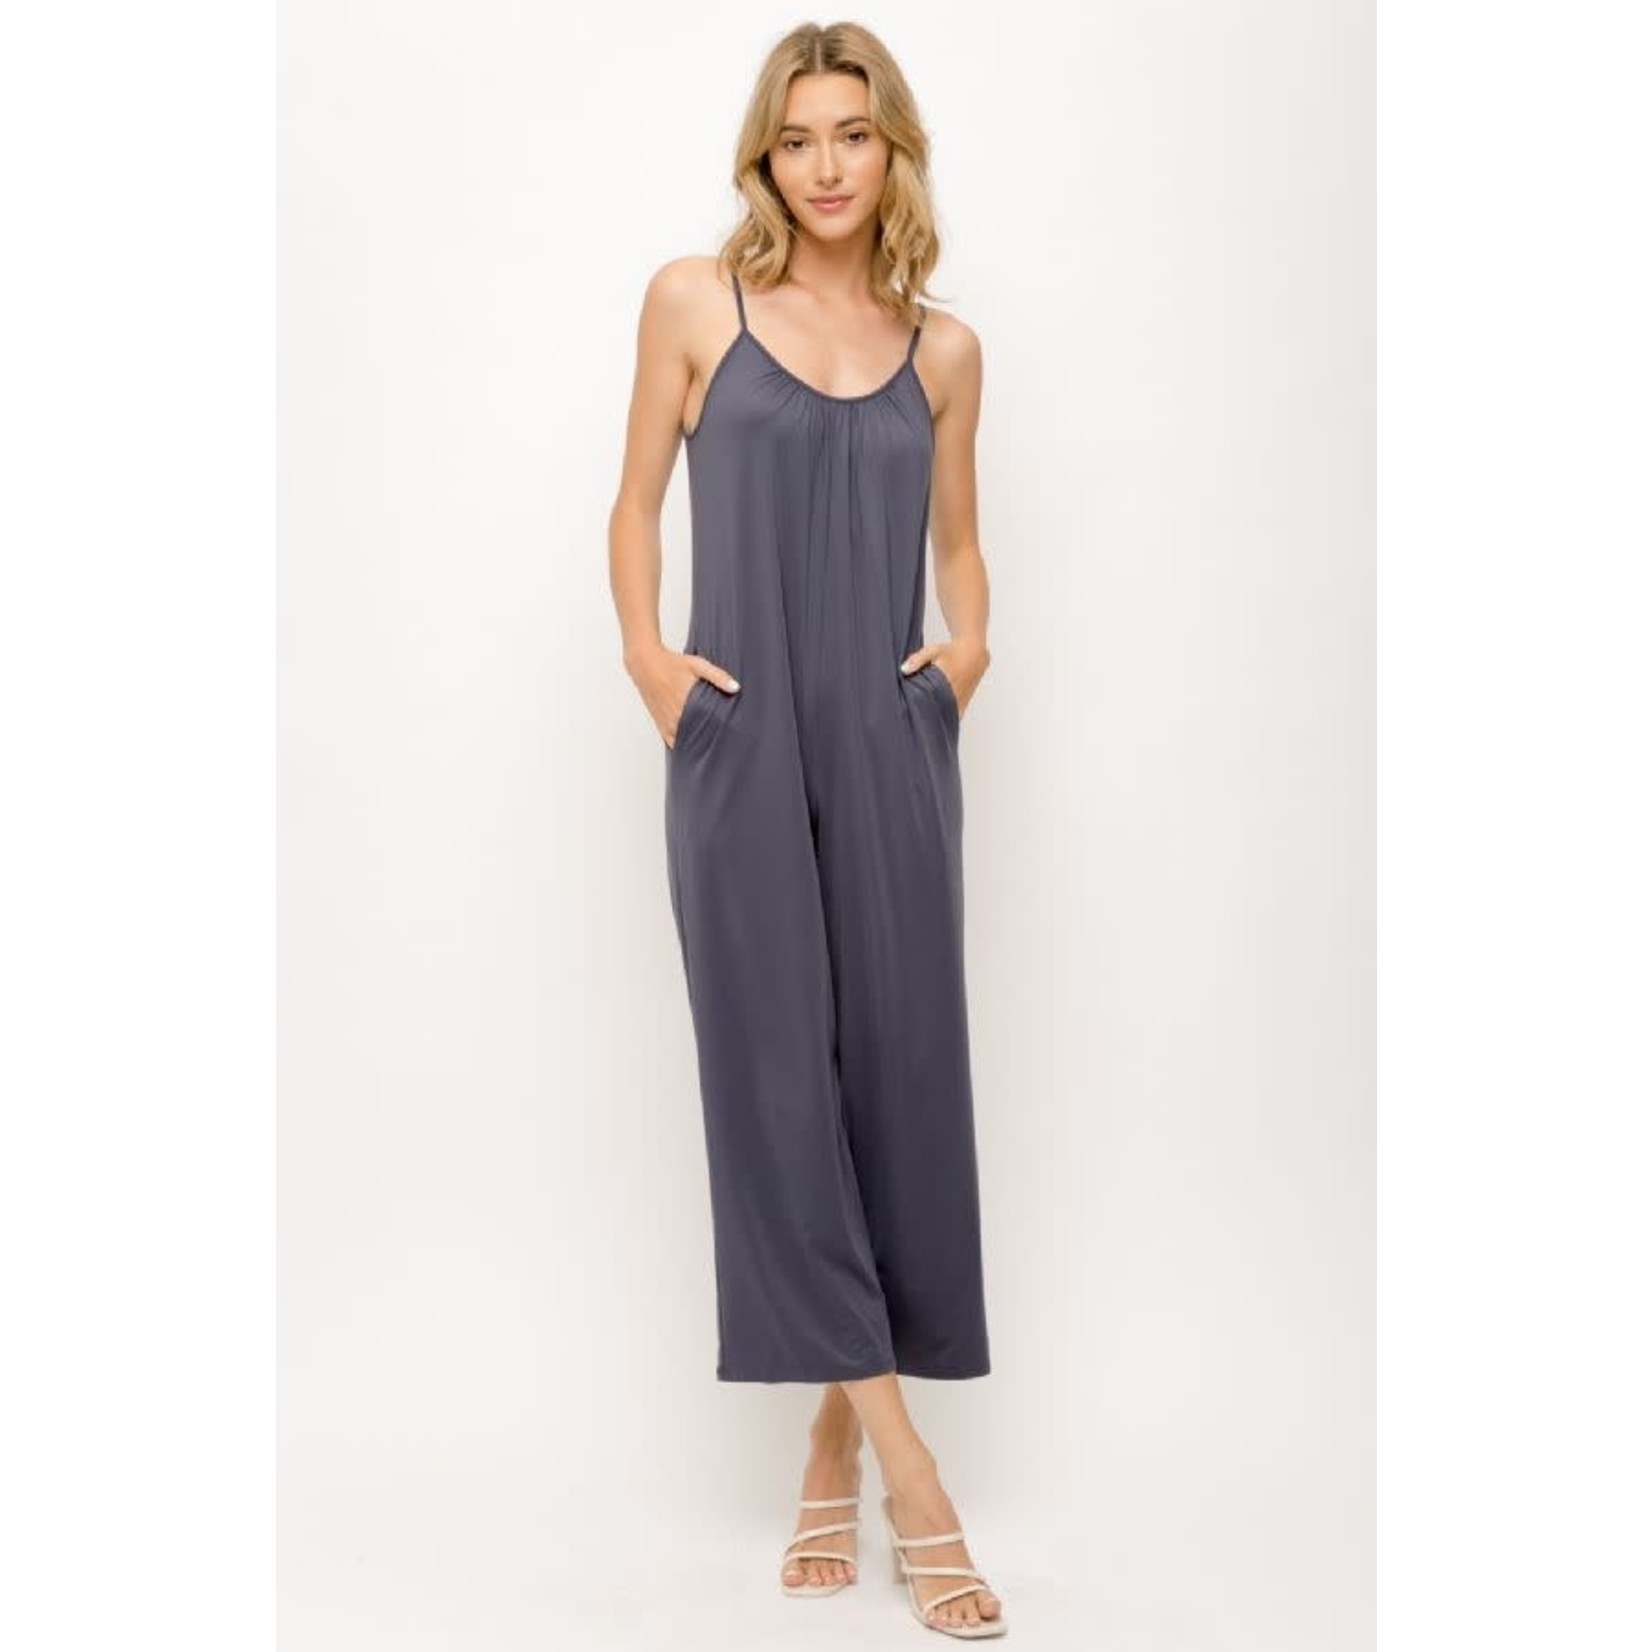 Mystree SOFT JERSEY JUMPSUIT WITH ADJUSTABLE STRAPS